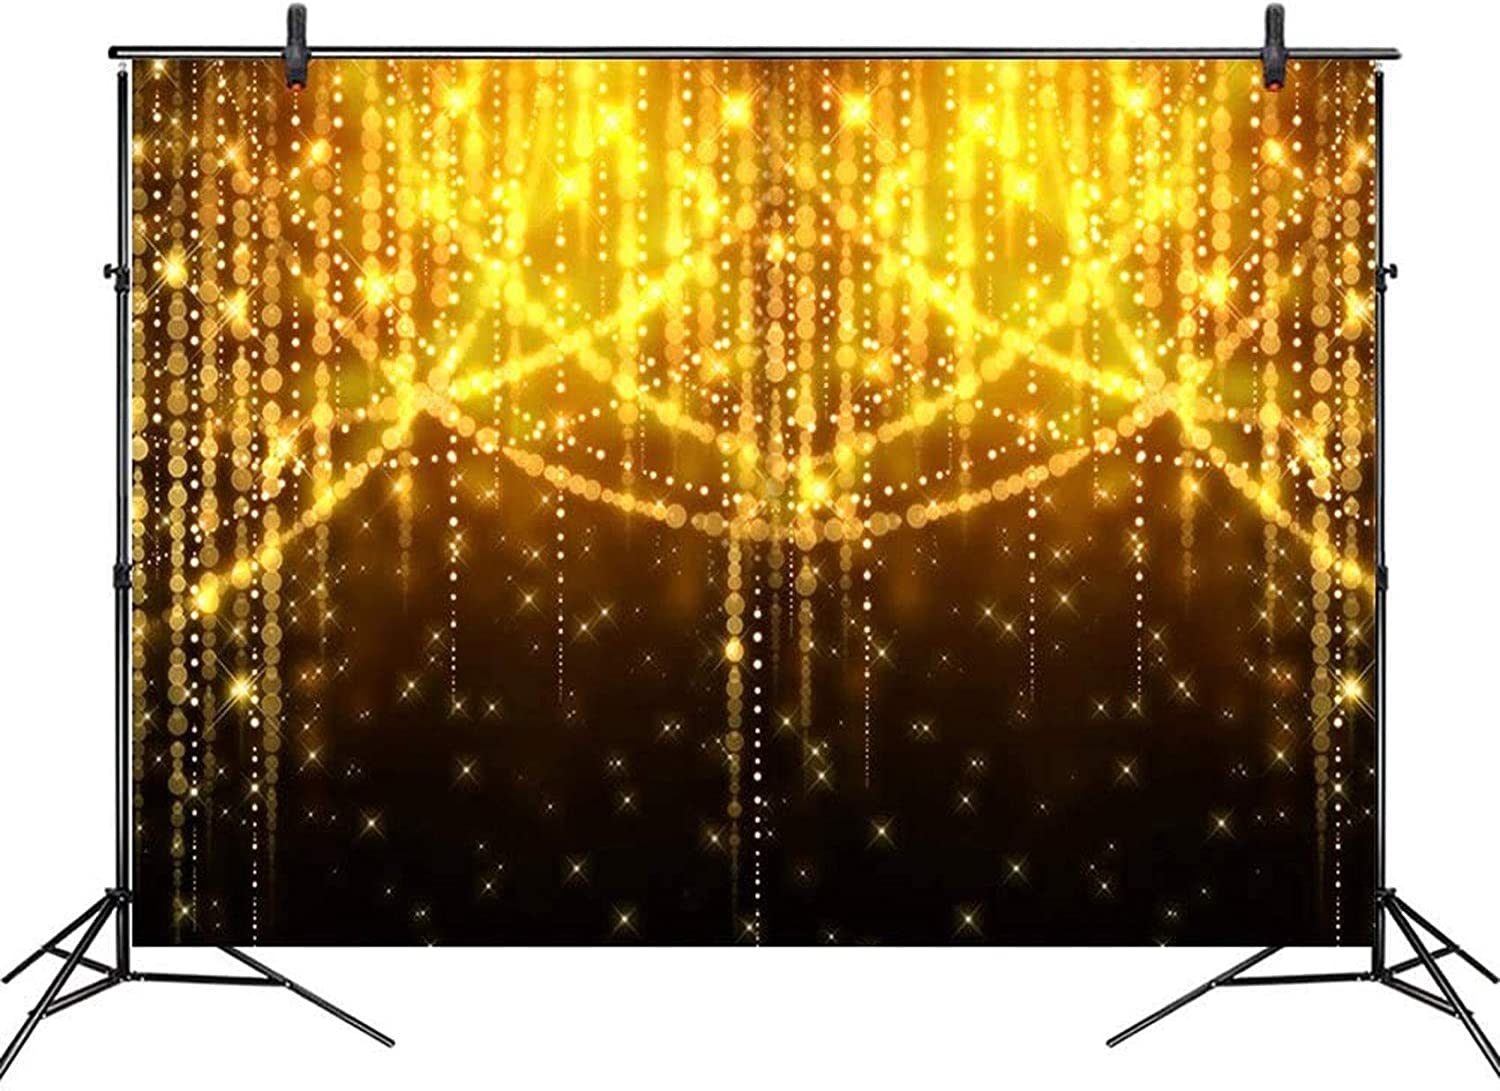 COMOPHOTO 7x5ft Glitter Gold Backdrop Golden Spots Birthday Black Background Party Vintage Abstract Wedding Bday Photo Booth Backdrops Party Decorations Banner Supplies